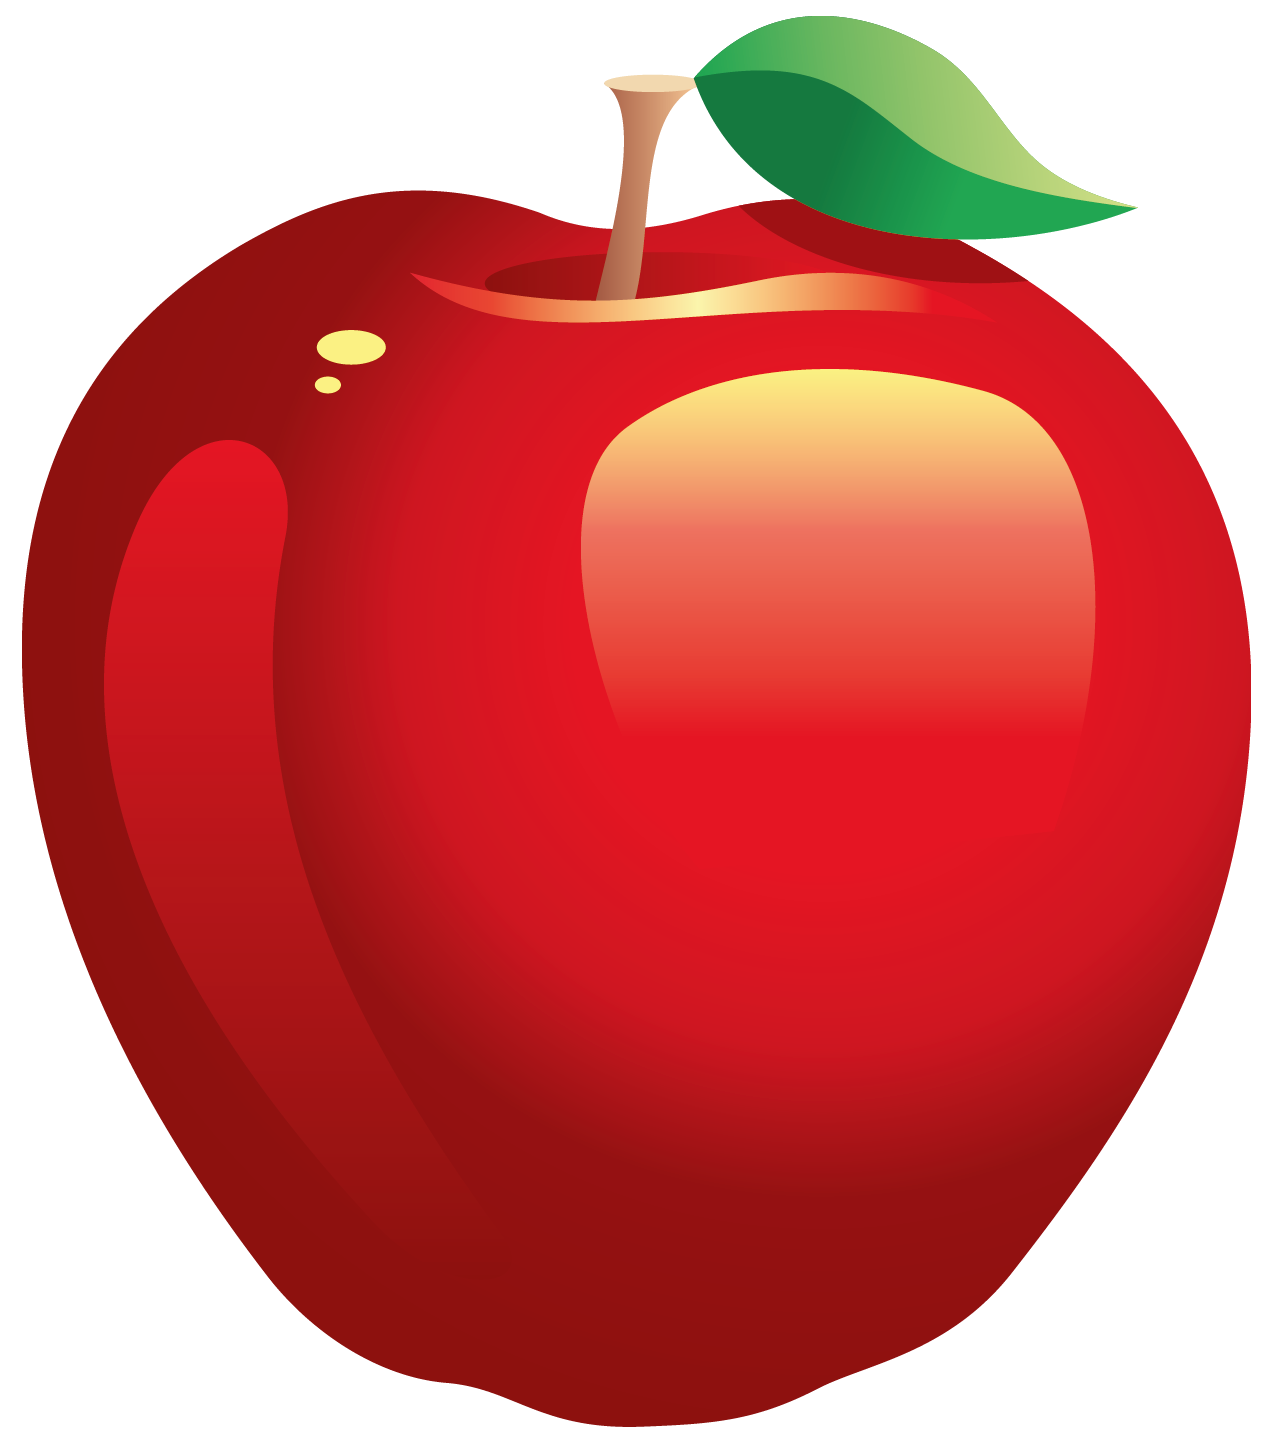 Apple with splatter paint clipart